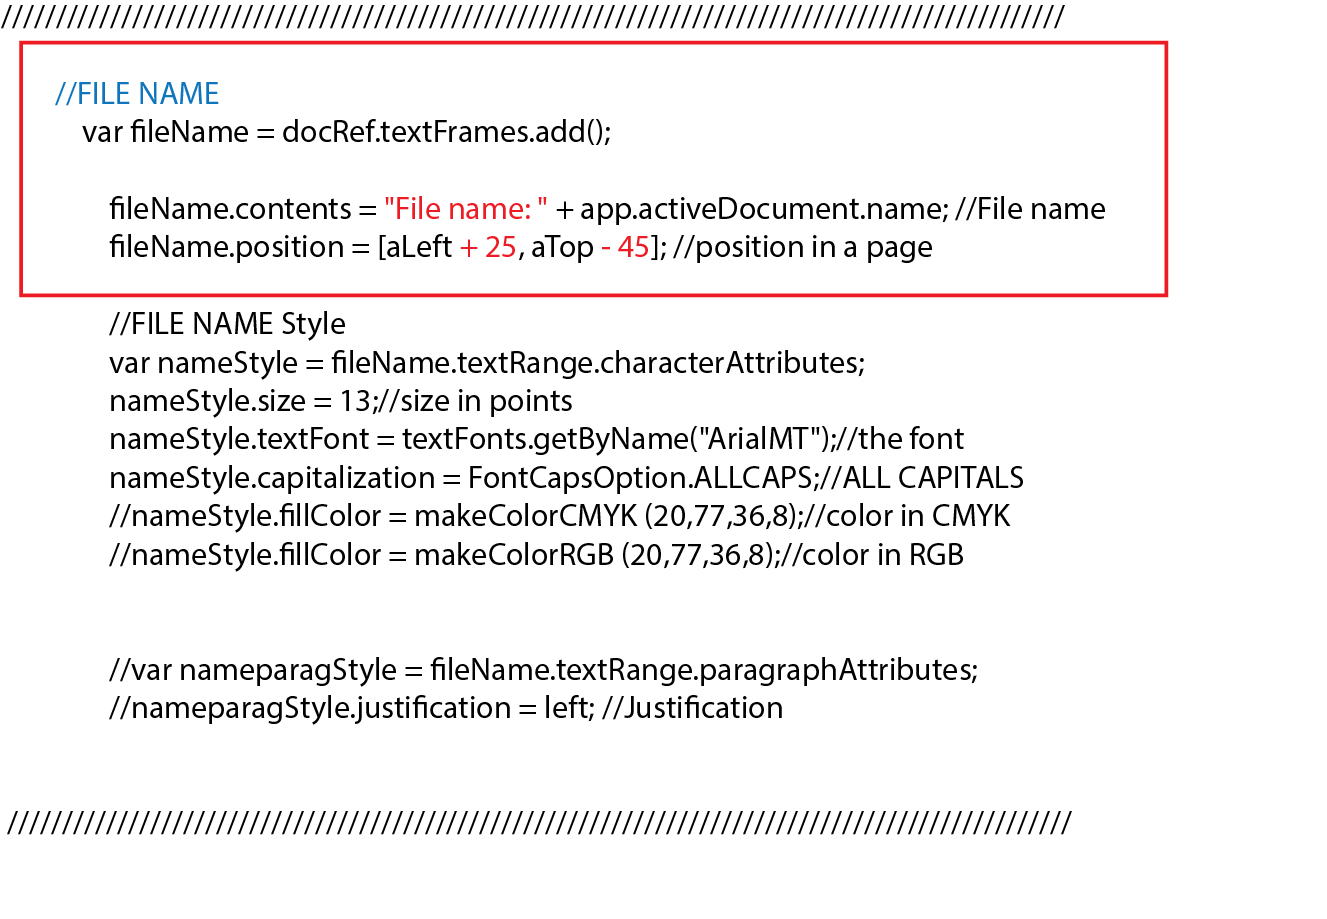 Script text for file name